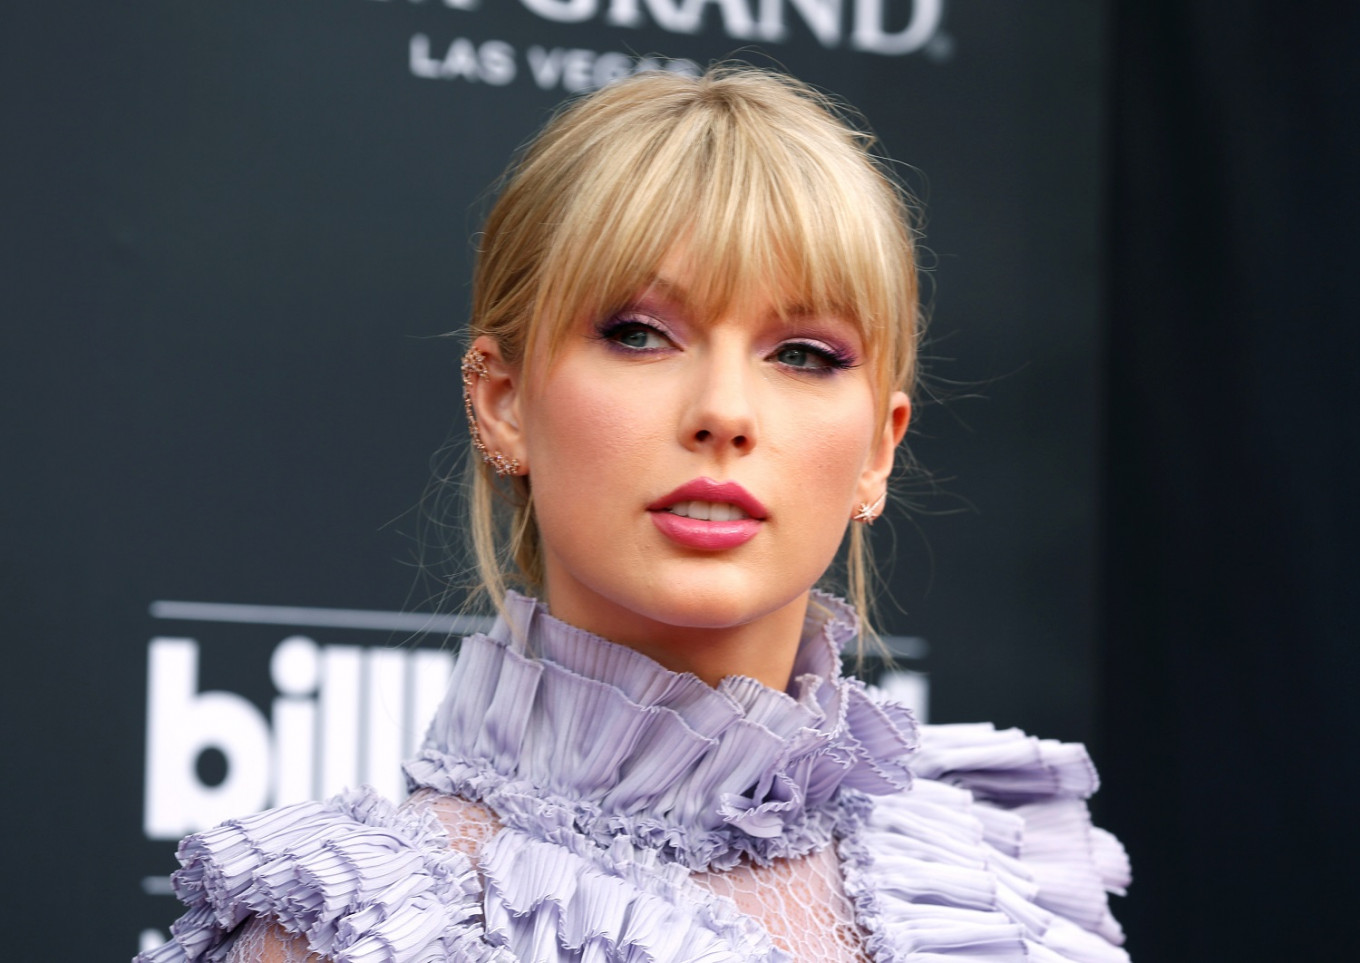 Taylor Swift Announces Surprise New Album Entertainment The Jakarta Post